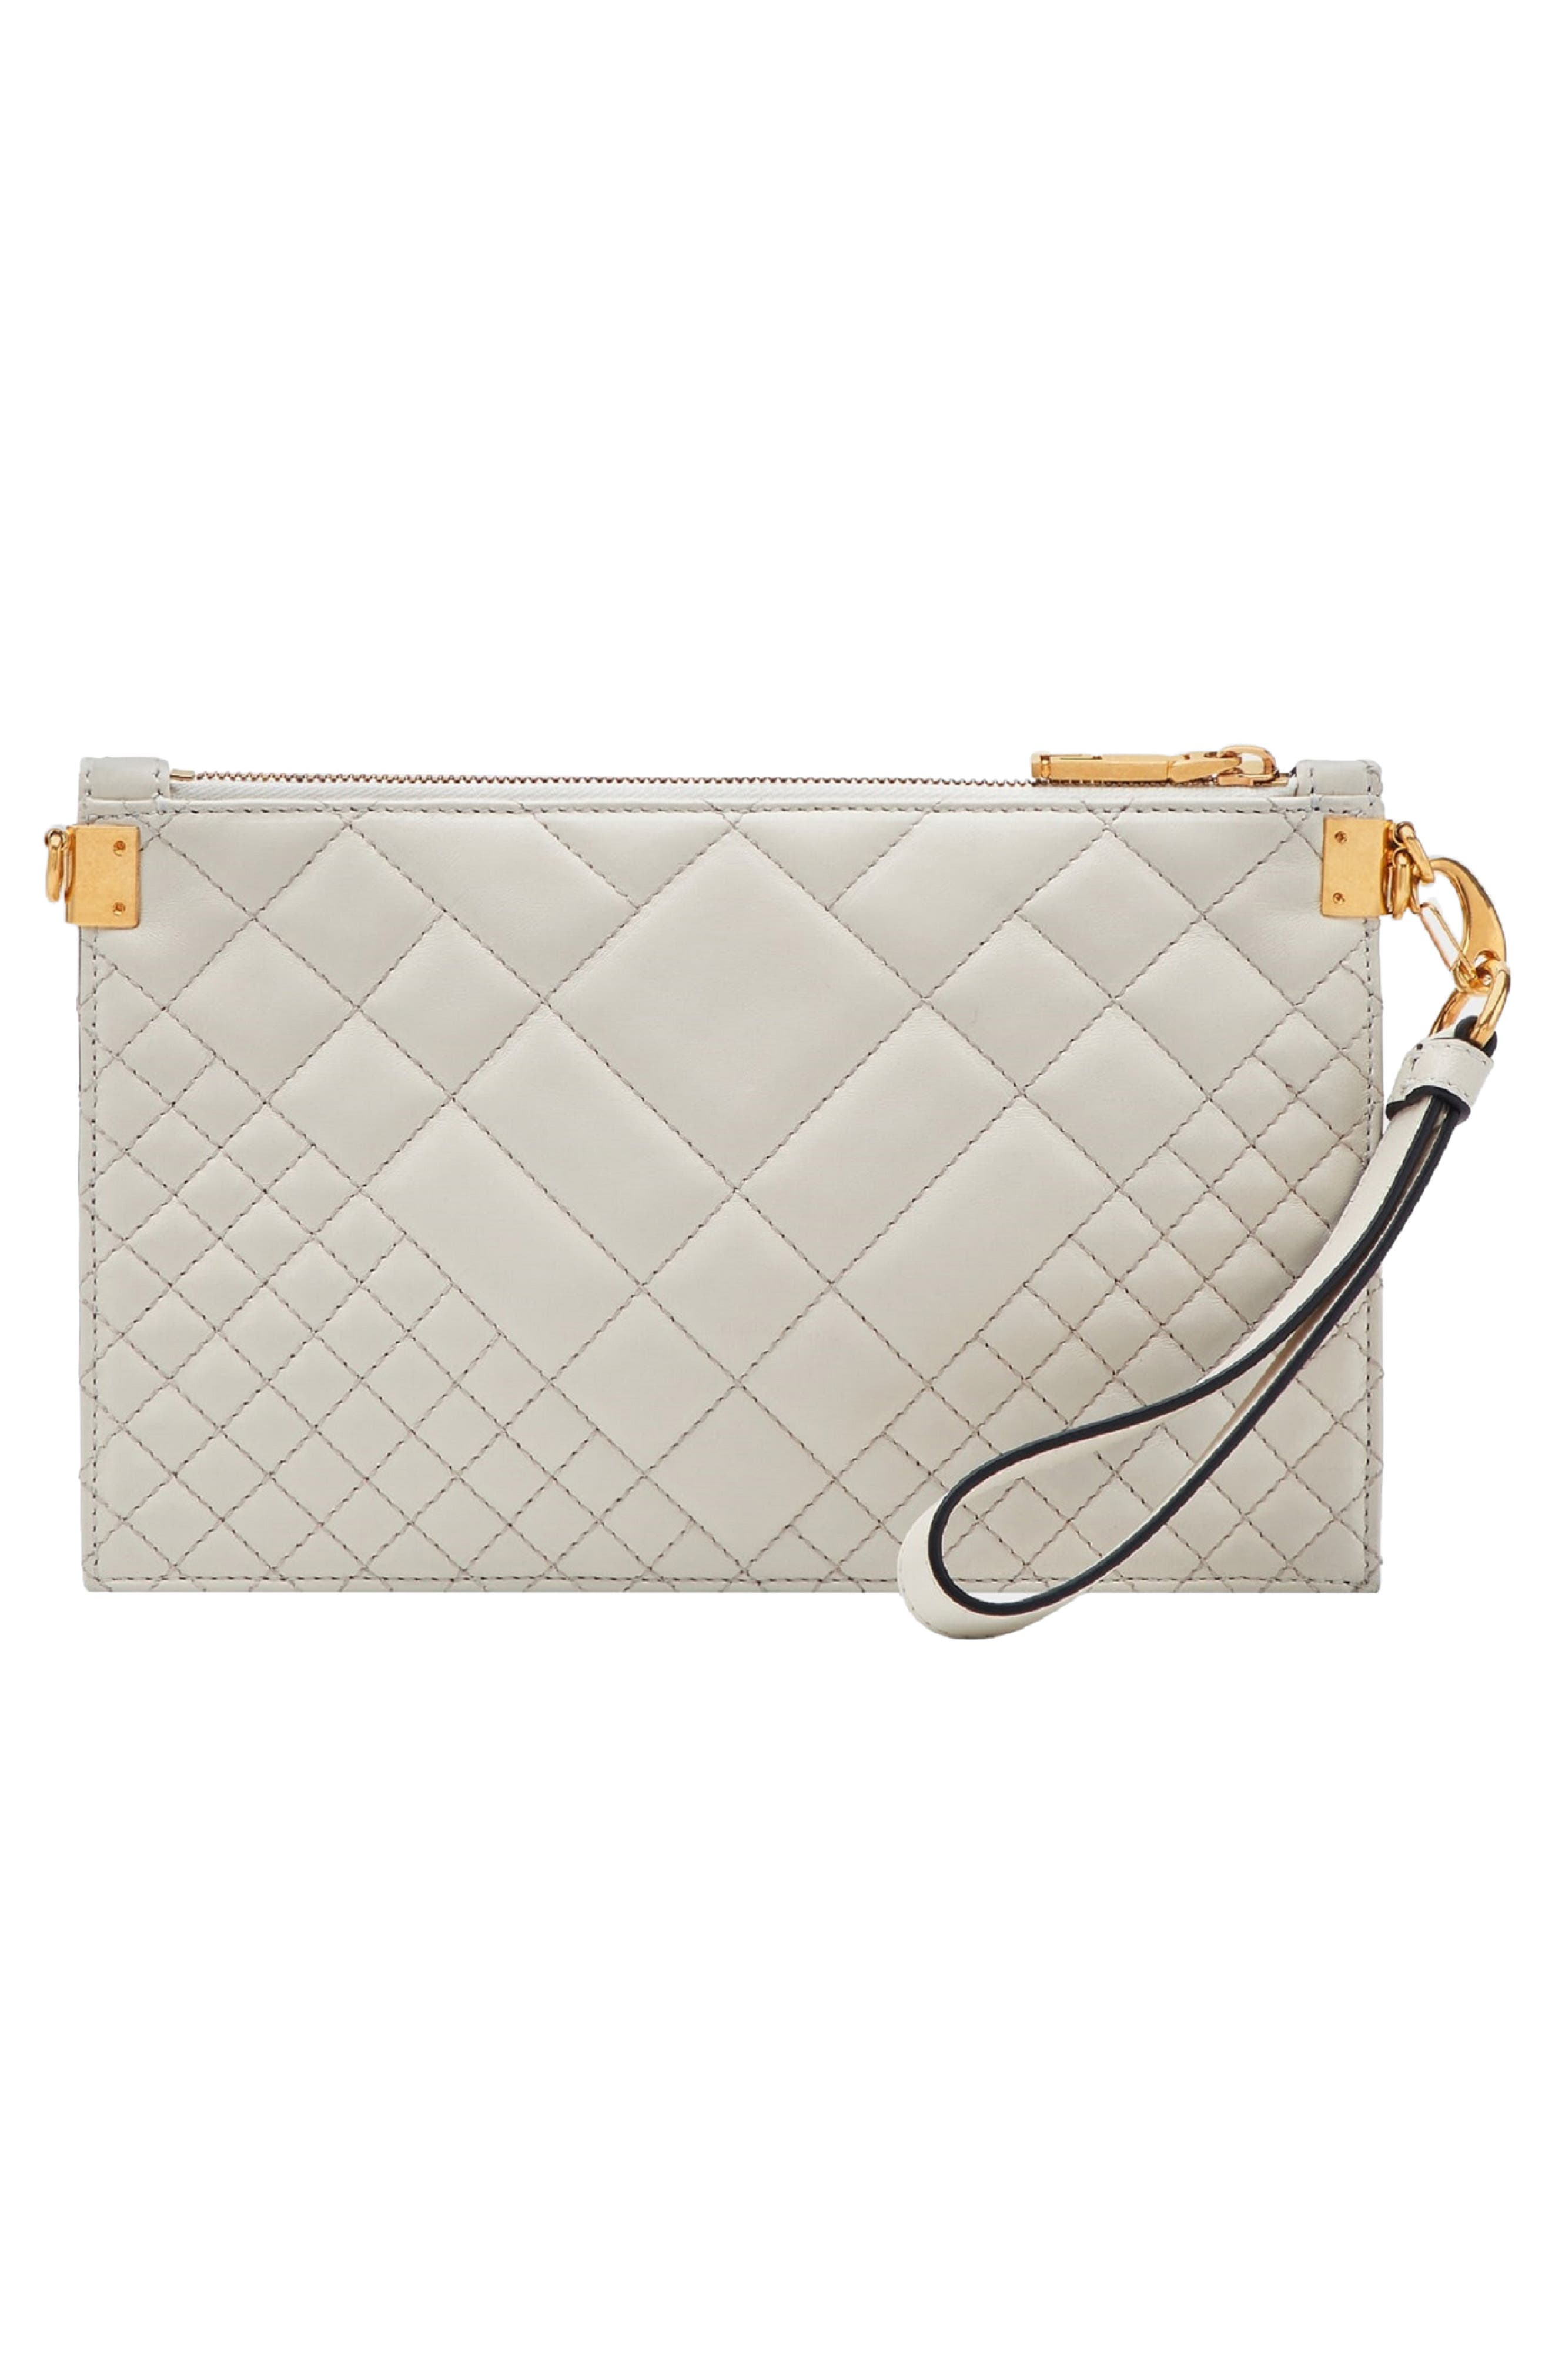 Tribute Icon Quilted Leather Pouch,                             Alternate thumbnail 3, color,                             OFF WHITE/ GOLD